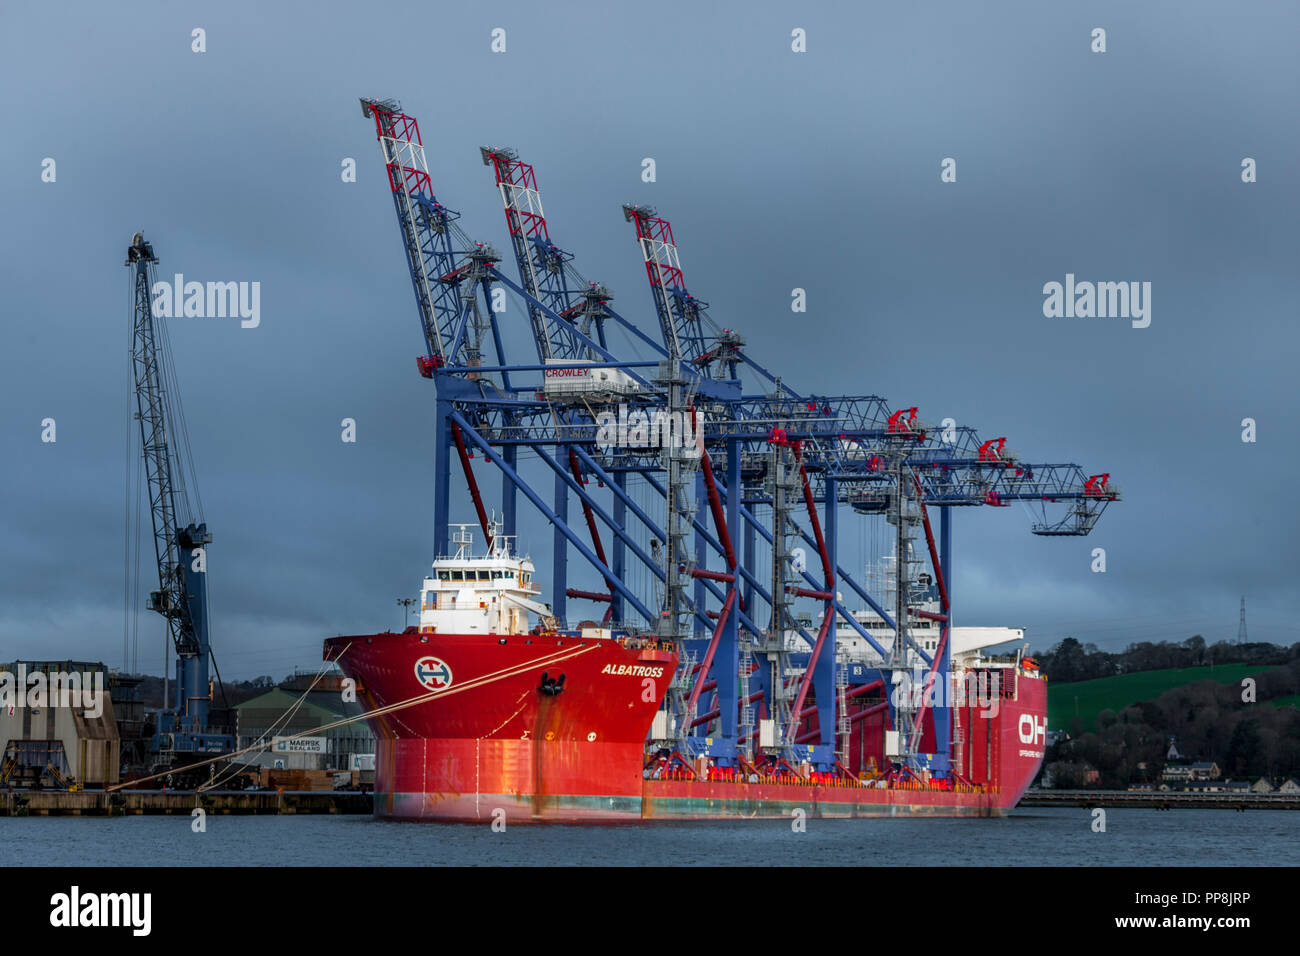 Ringaskiddy, Cork, Ireland. 04th March, 2017. The semi-submersible heavy lift vessel Albratross now berthed at Rinaskiddy Deep Water Berth loaded with - Stock Image